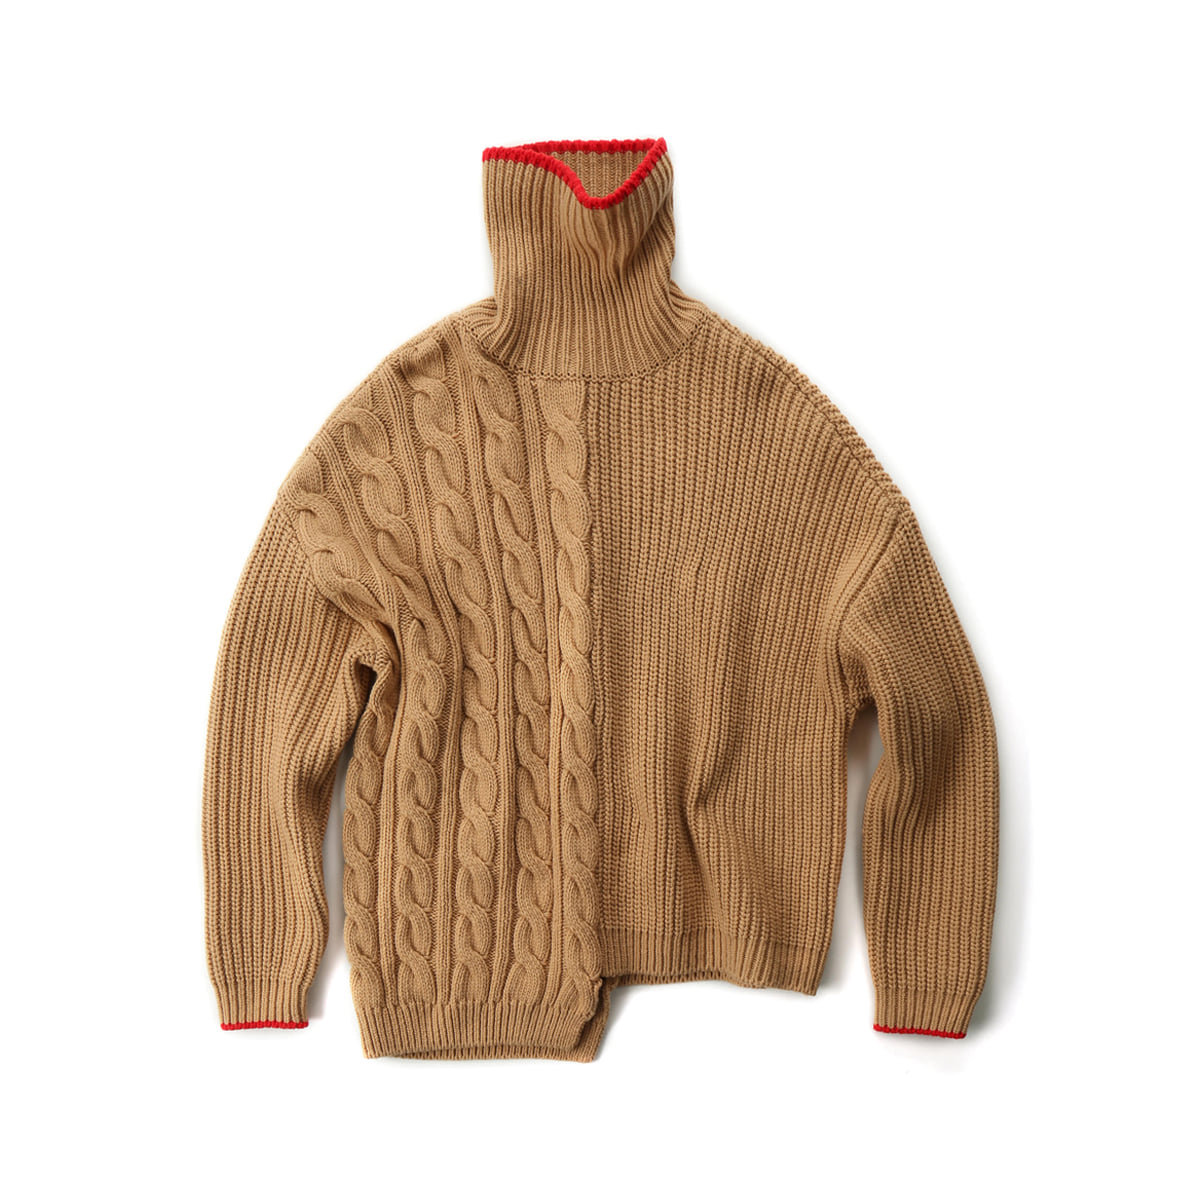 [MUSED] TRES UNBALANCED TURTLENECK SWEATER 'CAMEL/RED'